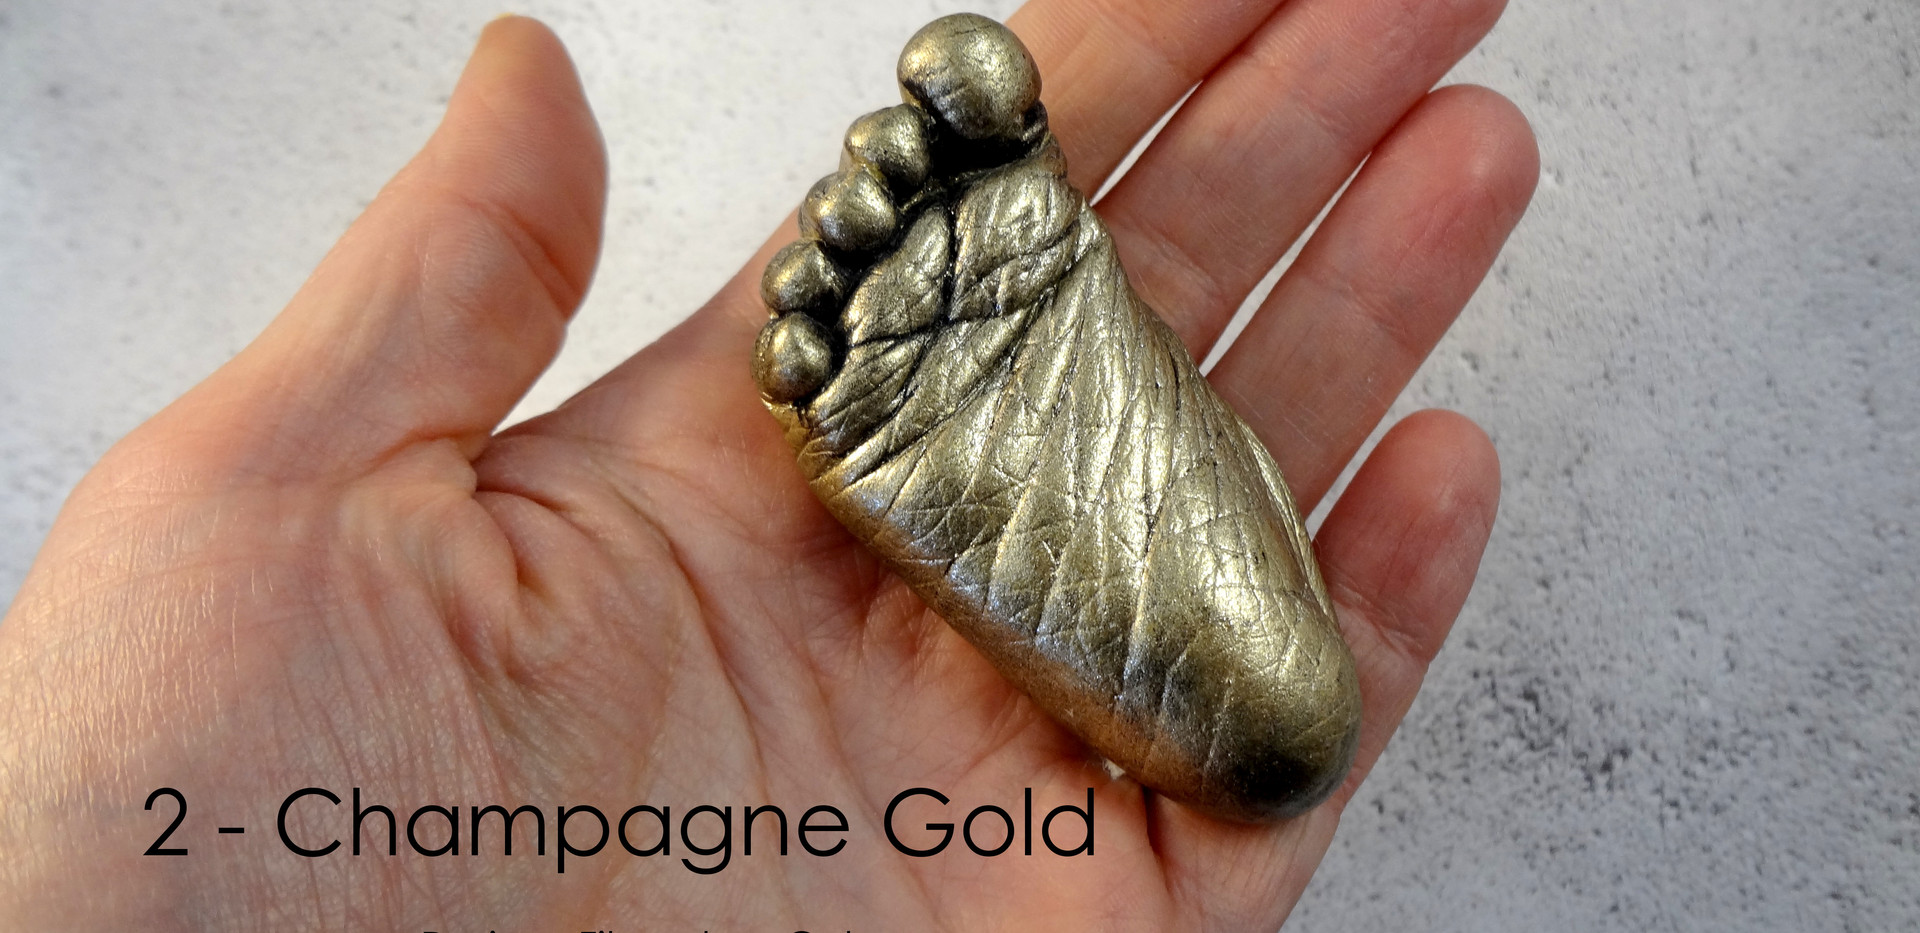 Champagne Gold Baby Casting by Angelcasts